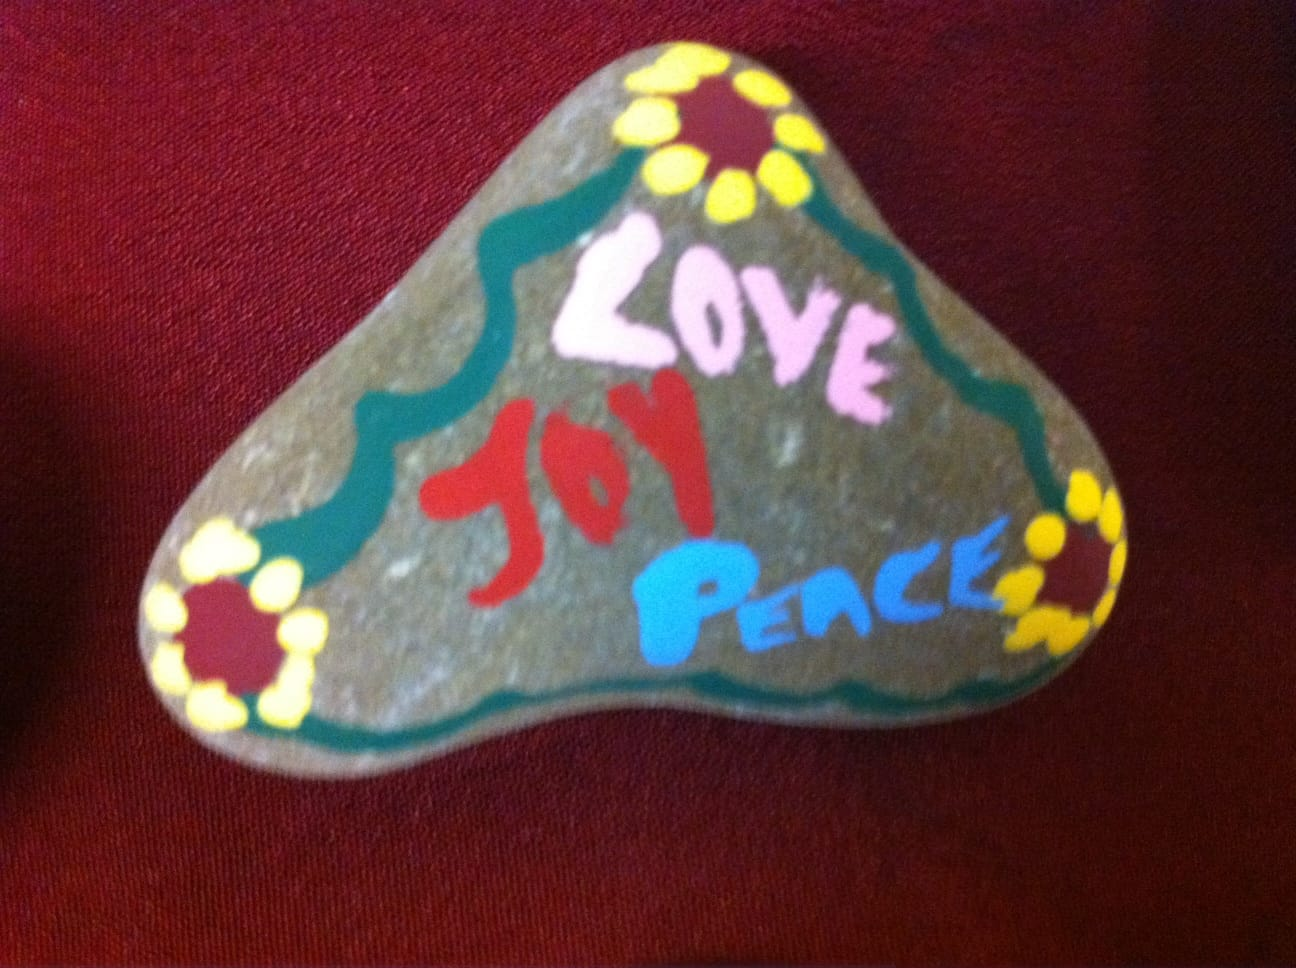 Debbie's Creative Heart - her gift & part of her presentation about Heart Chakra